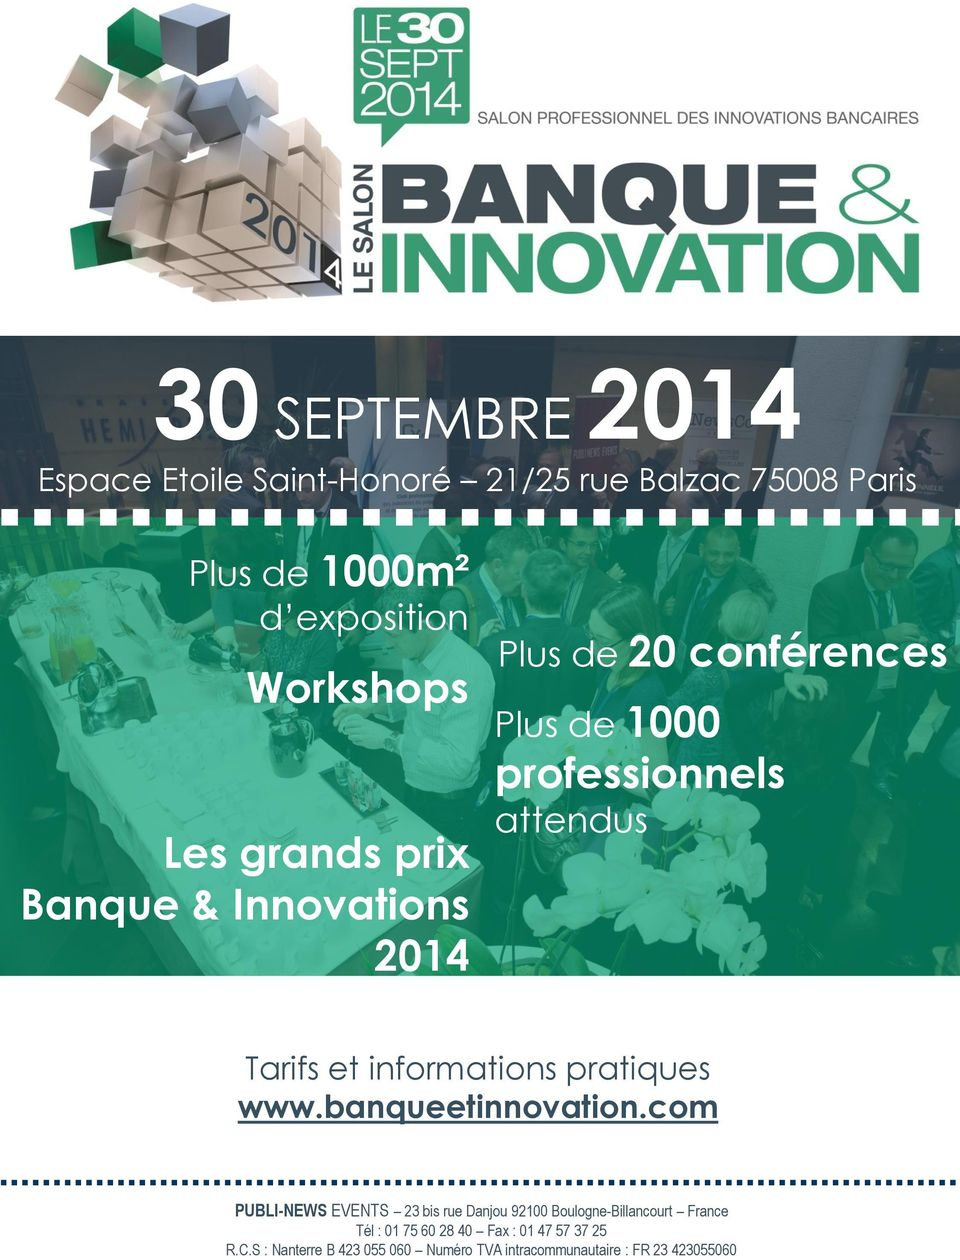 informations pratiques www.banqueetinnovation.